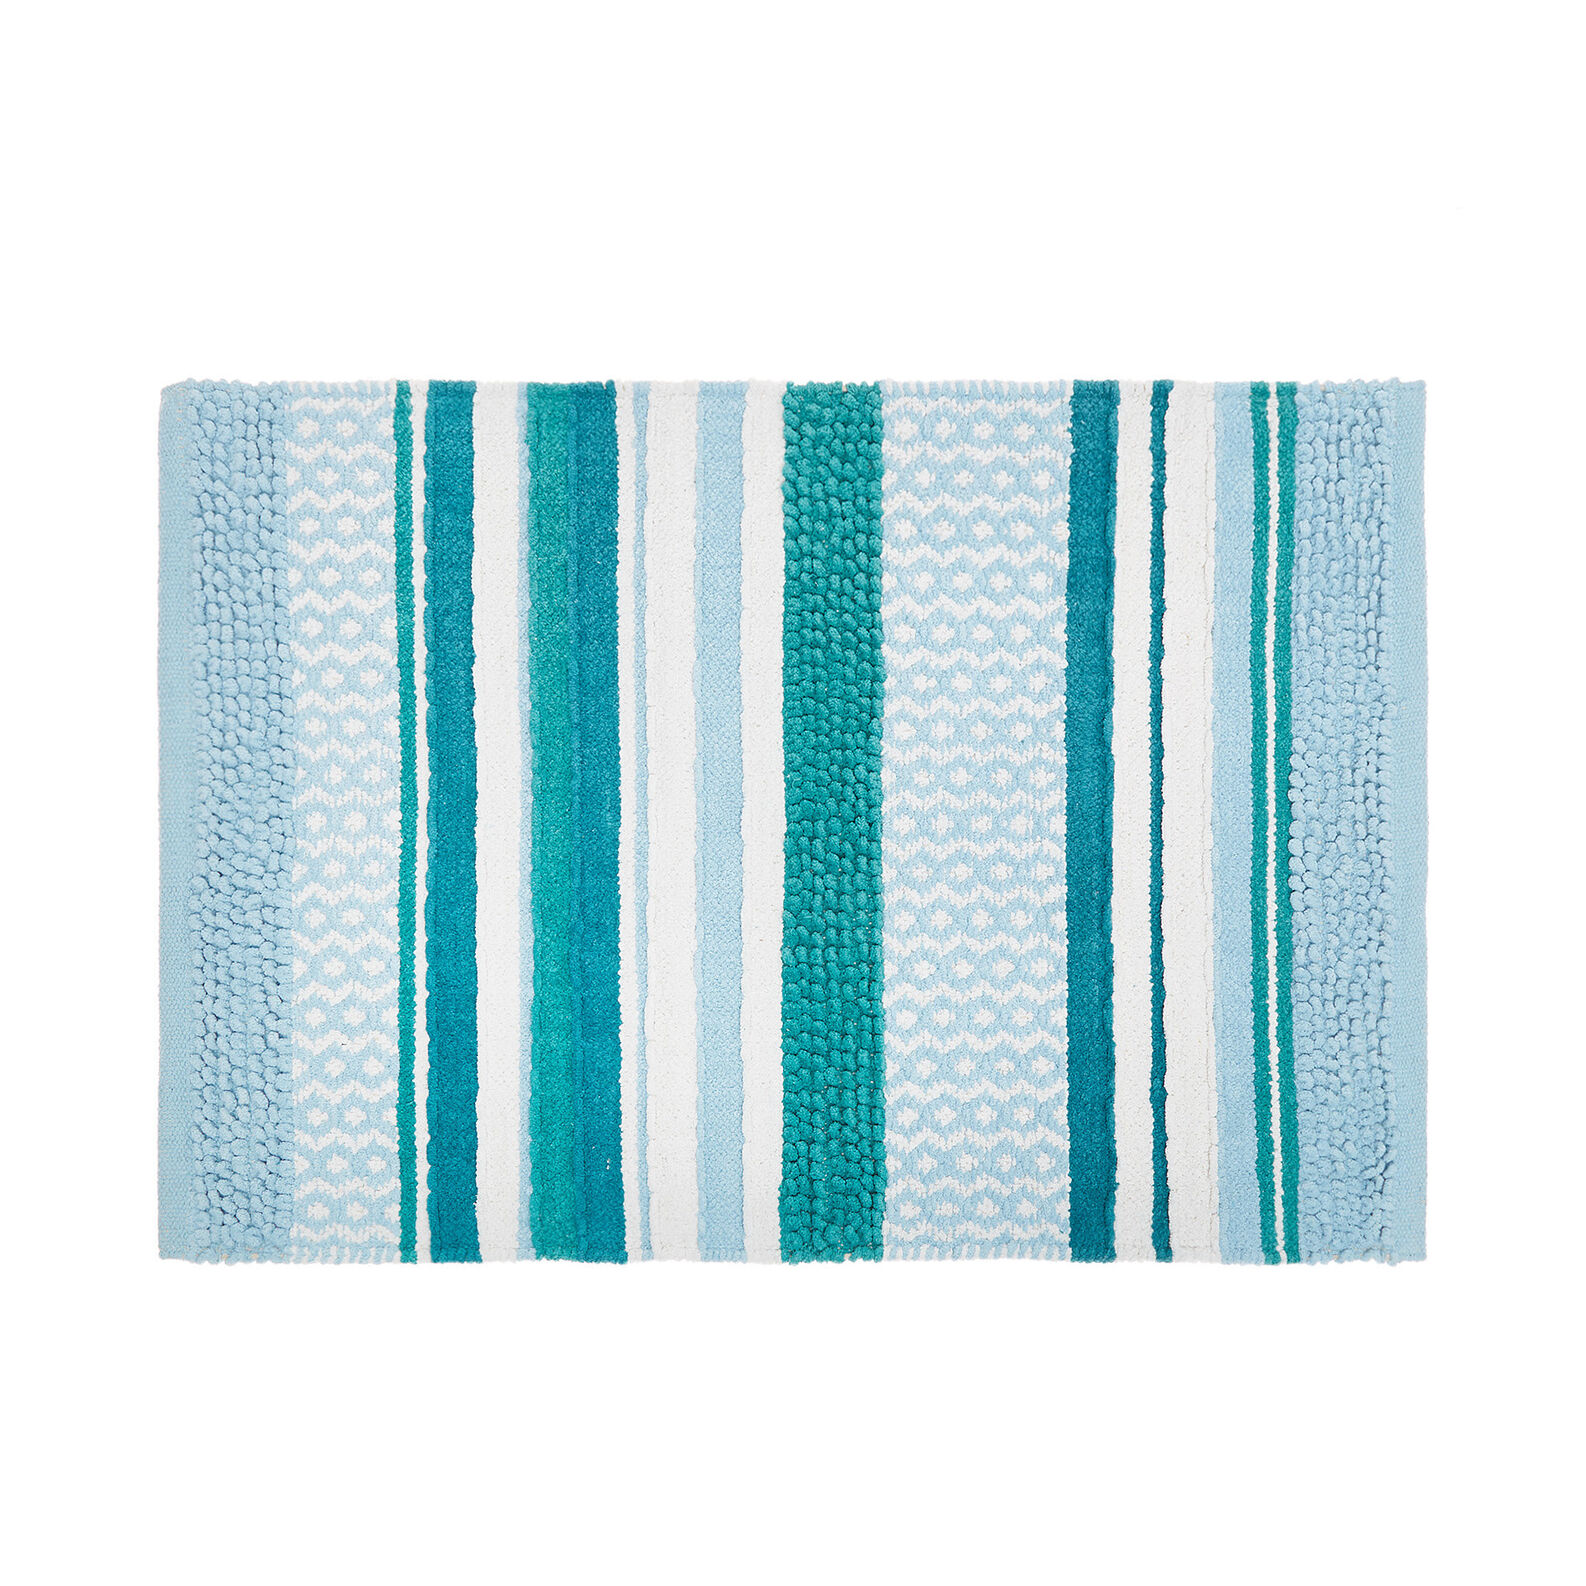 100% cotton bath mat with patchwork motif